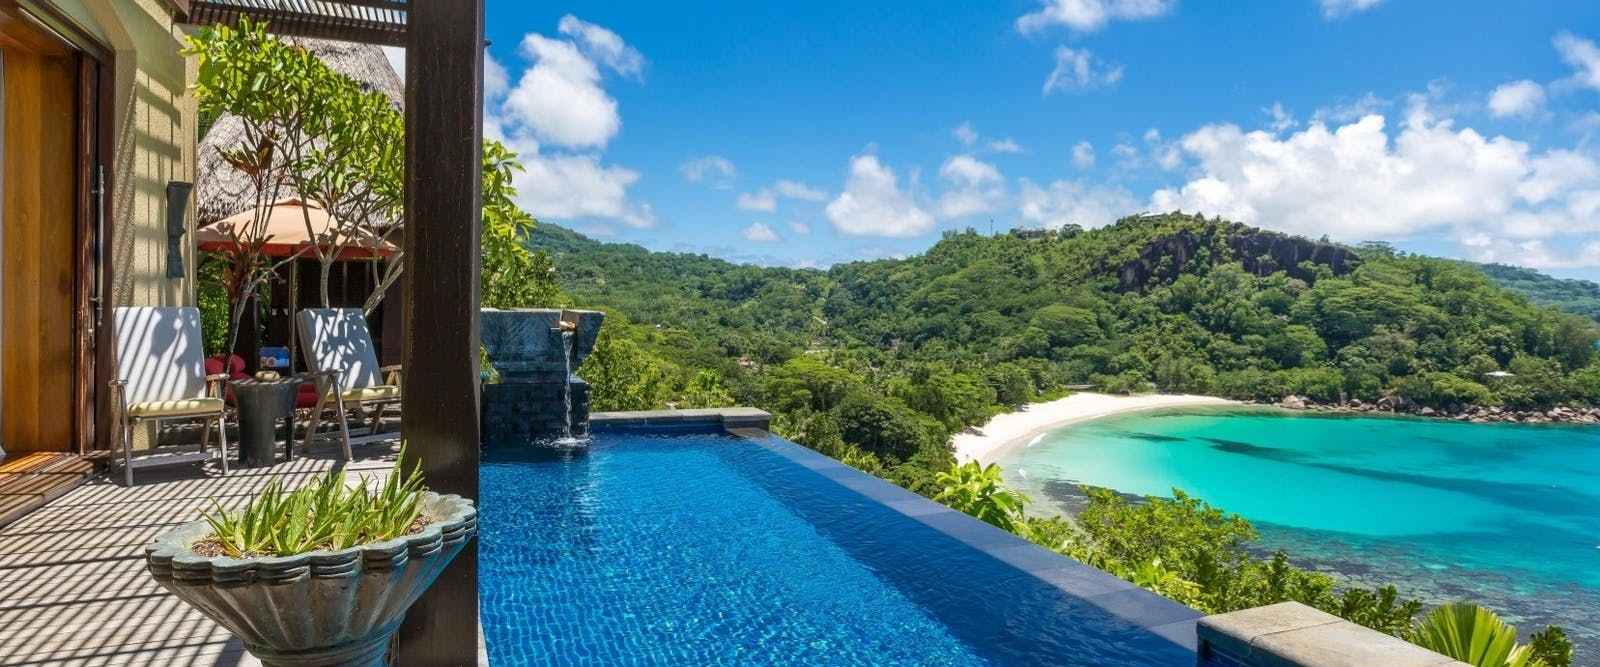 Private Infinity Pool at Maia Luxury Resort & Spa, Seychelles